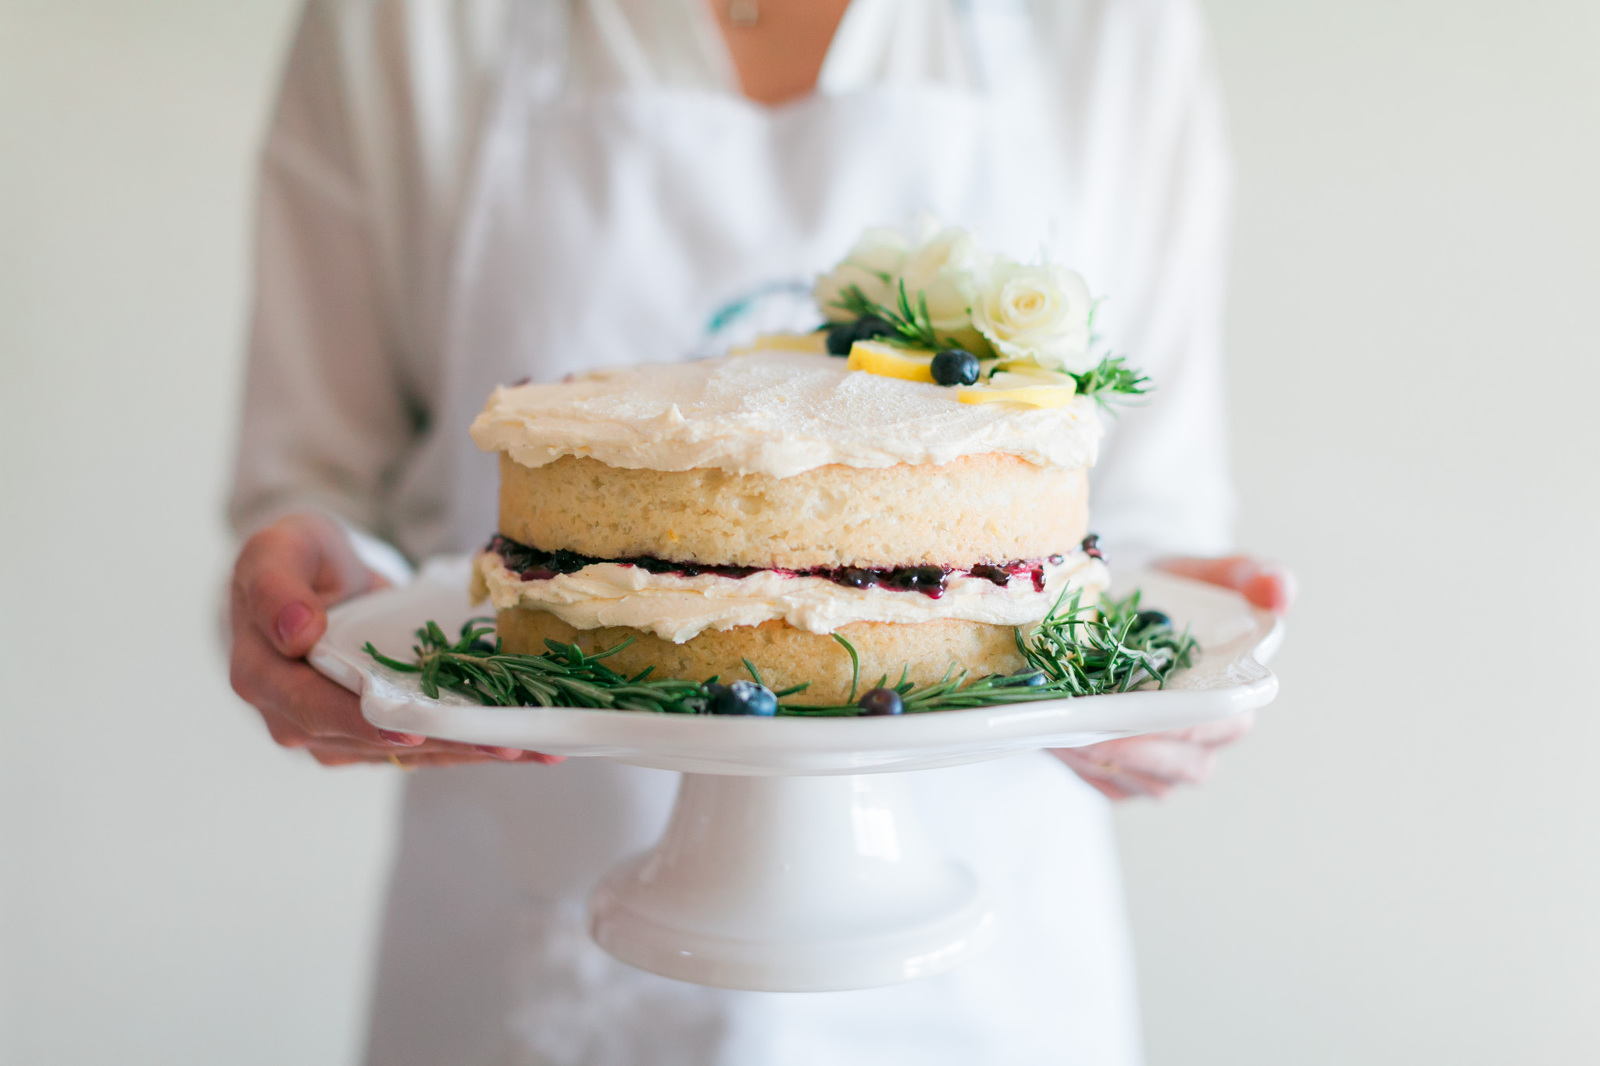 Chef in a white apron holding freshly baked vegan cake decorated with flowers and fruit